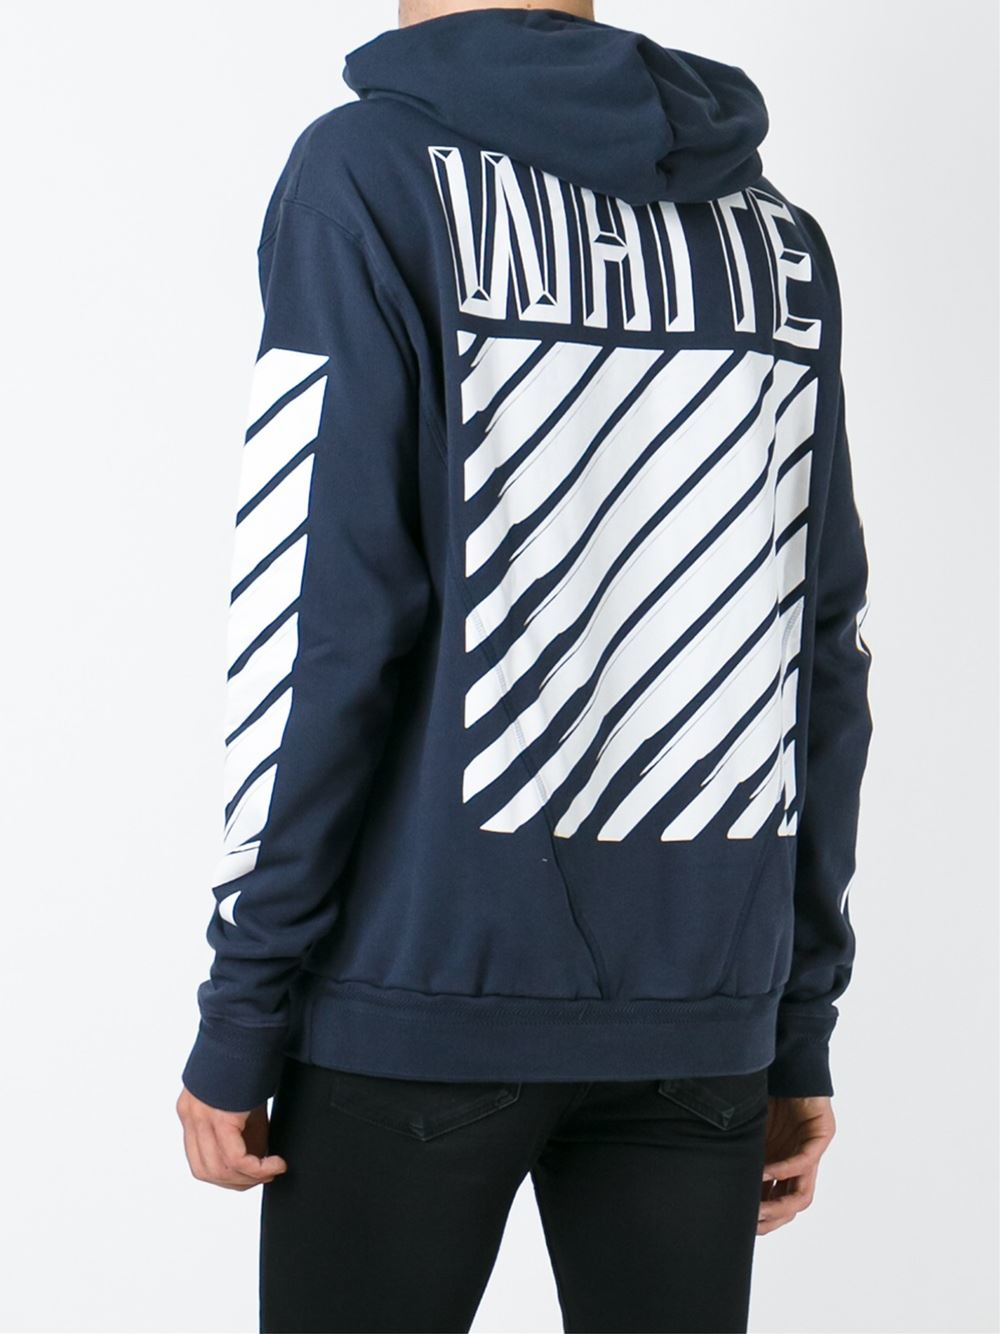 Lyst - Off-White c o Virgil Abloh Striped Sleeve Hoodie in Blue for Men feda06c48